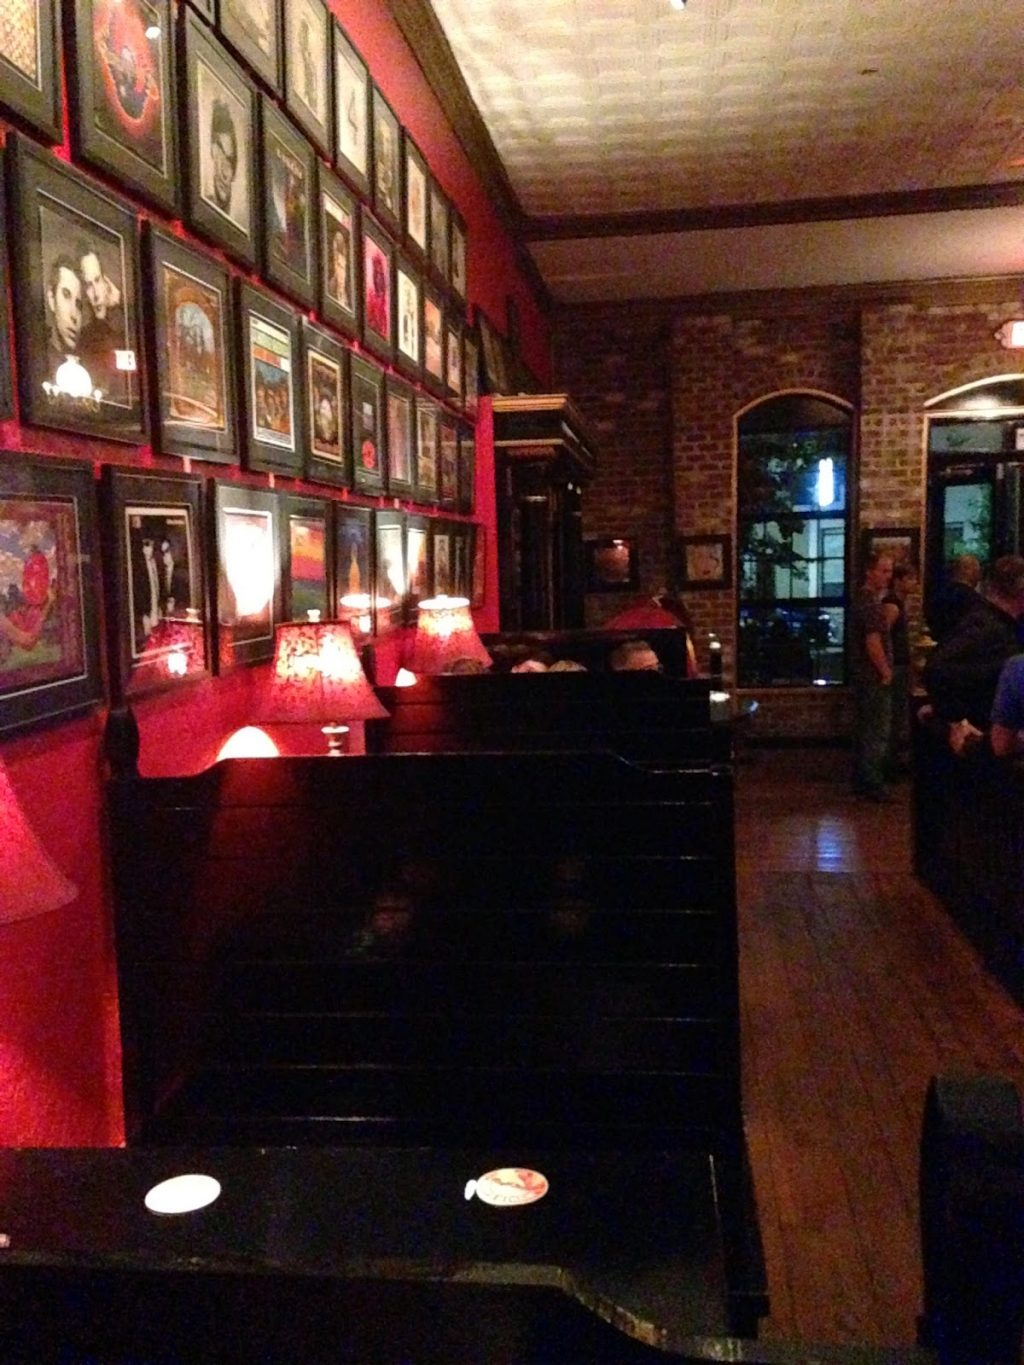 The Red Room bar